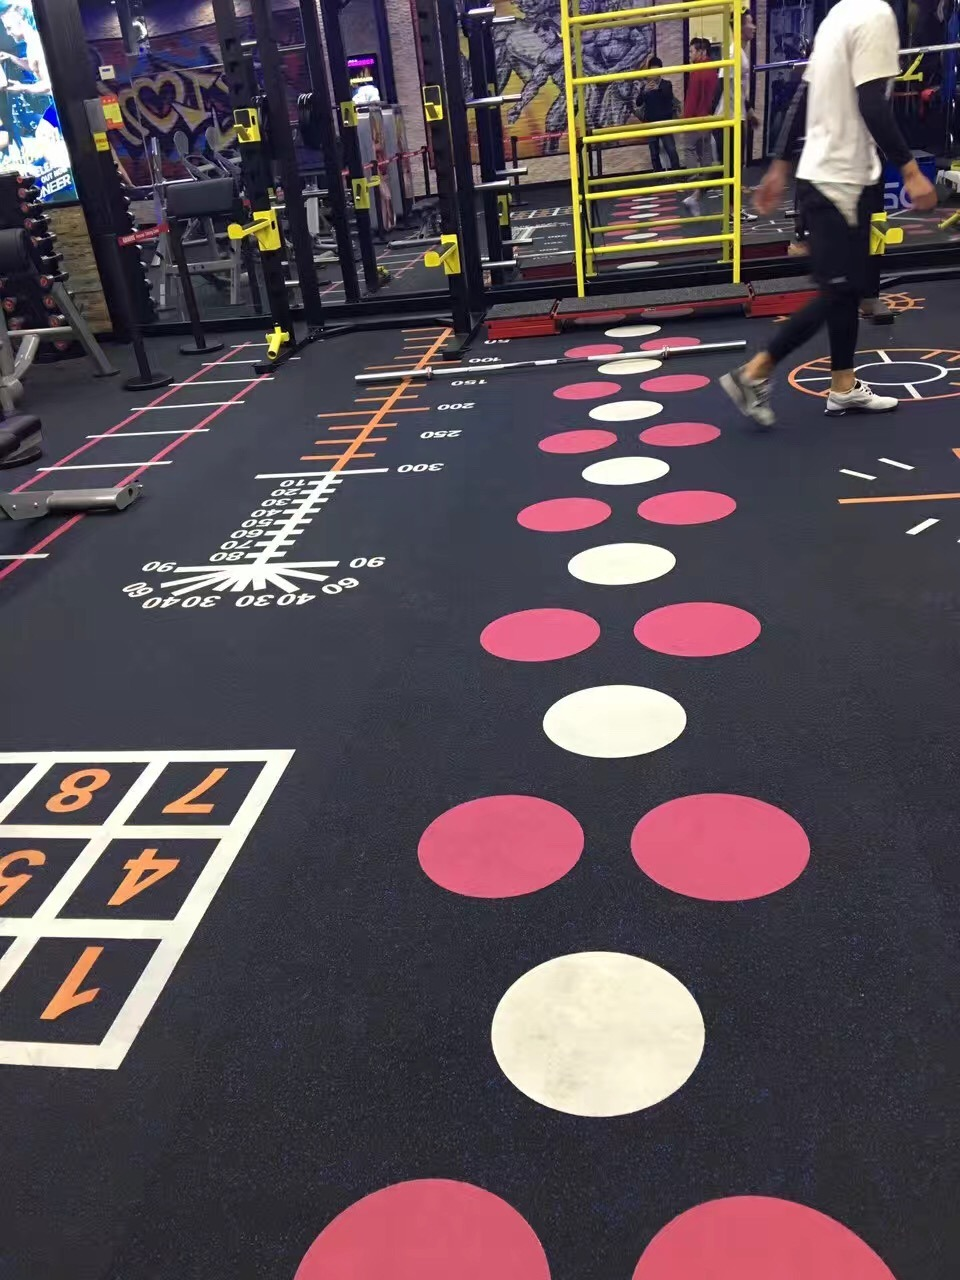 Professional Cheap Rubber/PVC/EPDM Flooring for Gym/Fitness in Tile/Roll/Interlocking Mode pictures & photos